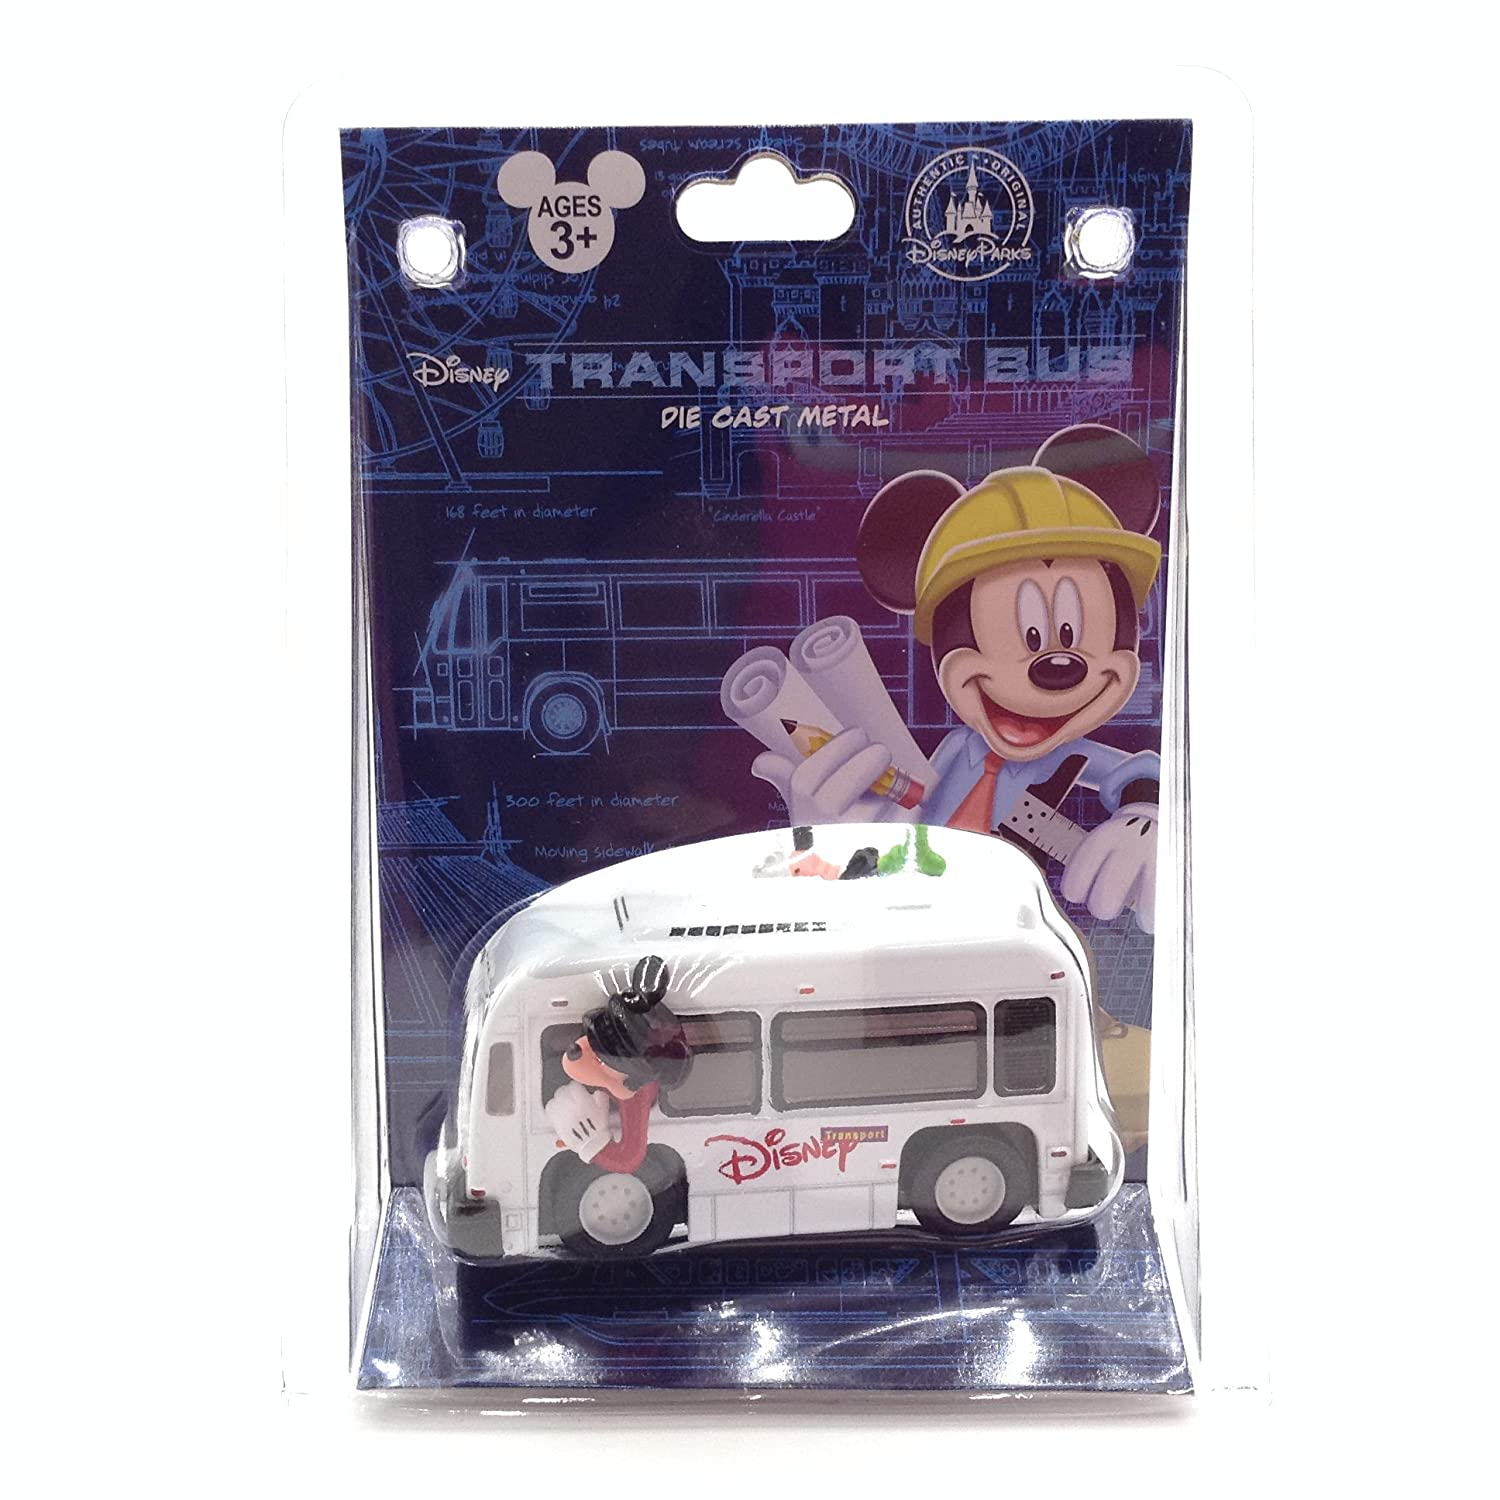 Disney Parks Transport Bus Die Cast Metal Play Vehicle